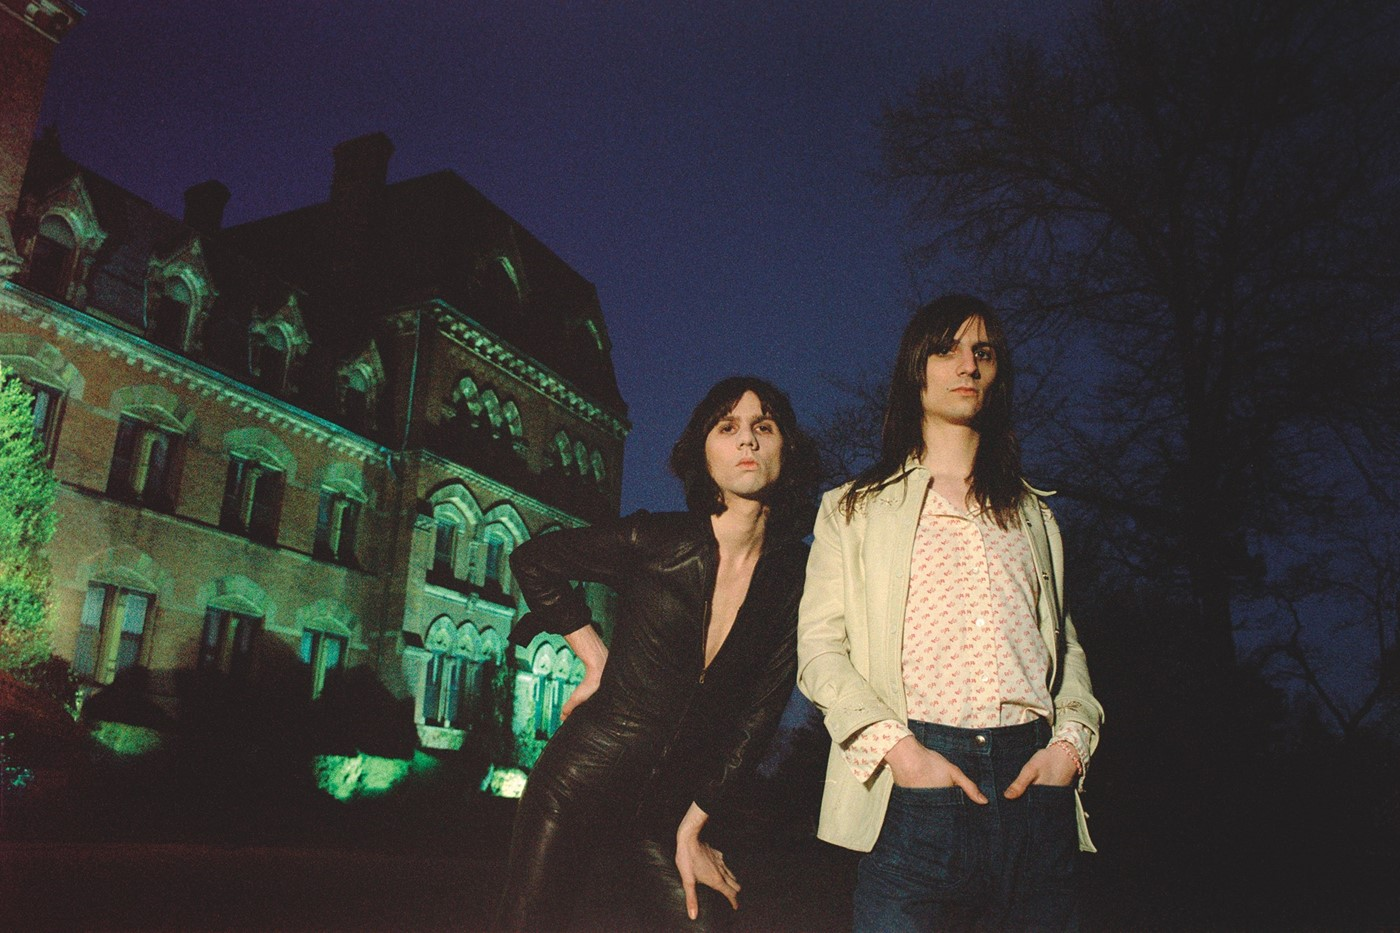 The Lemon Twigs interview D'Addario Michael Brian